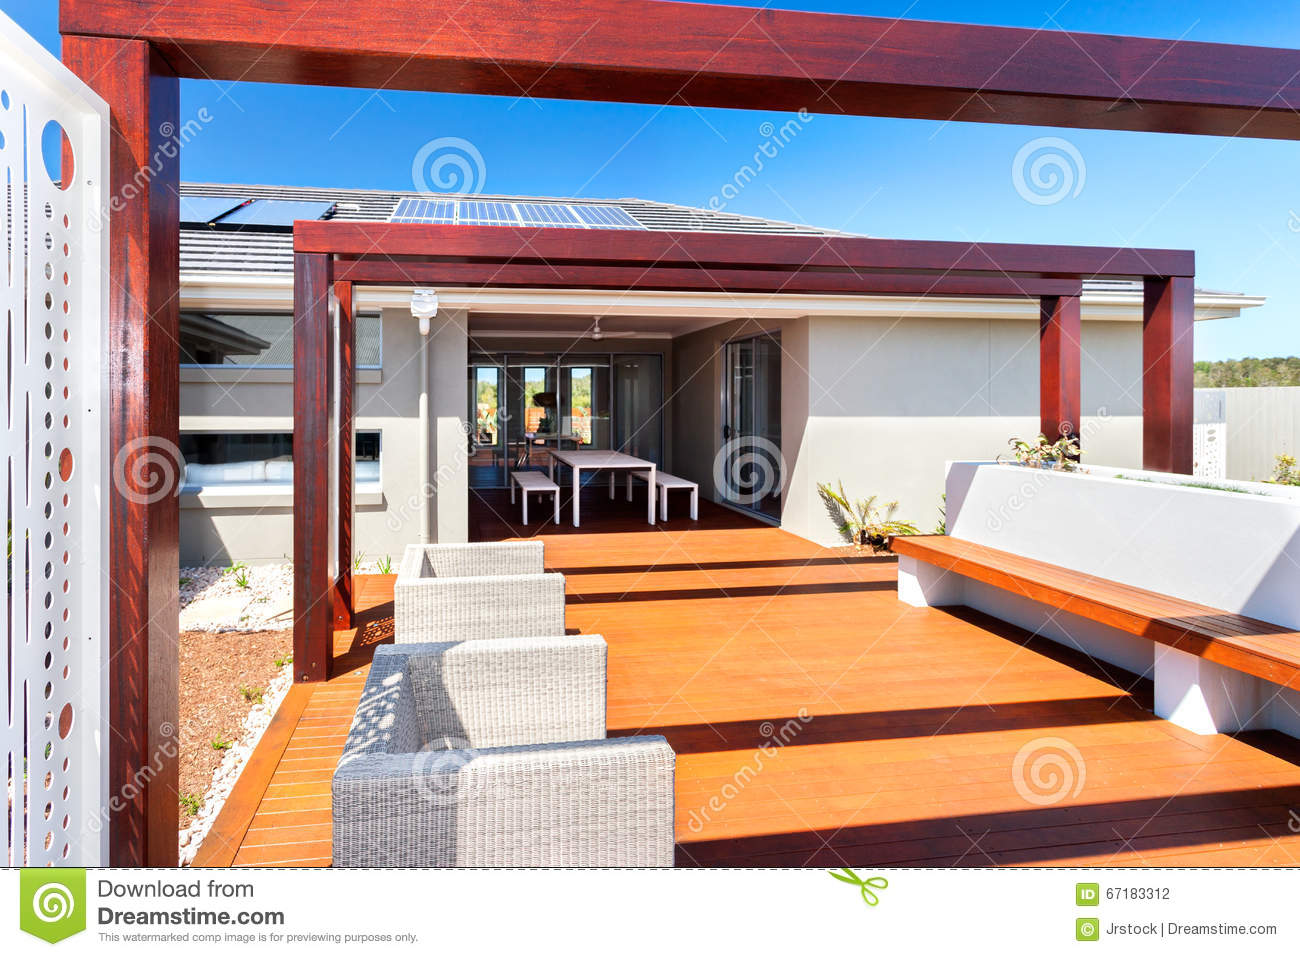 Outdoor patio seating area of a modern house with wooden floor